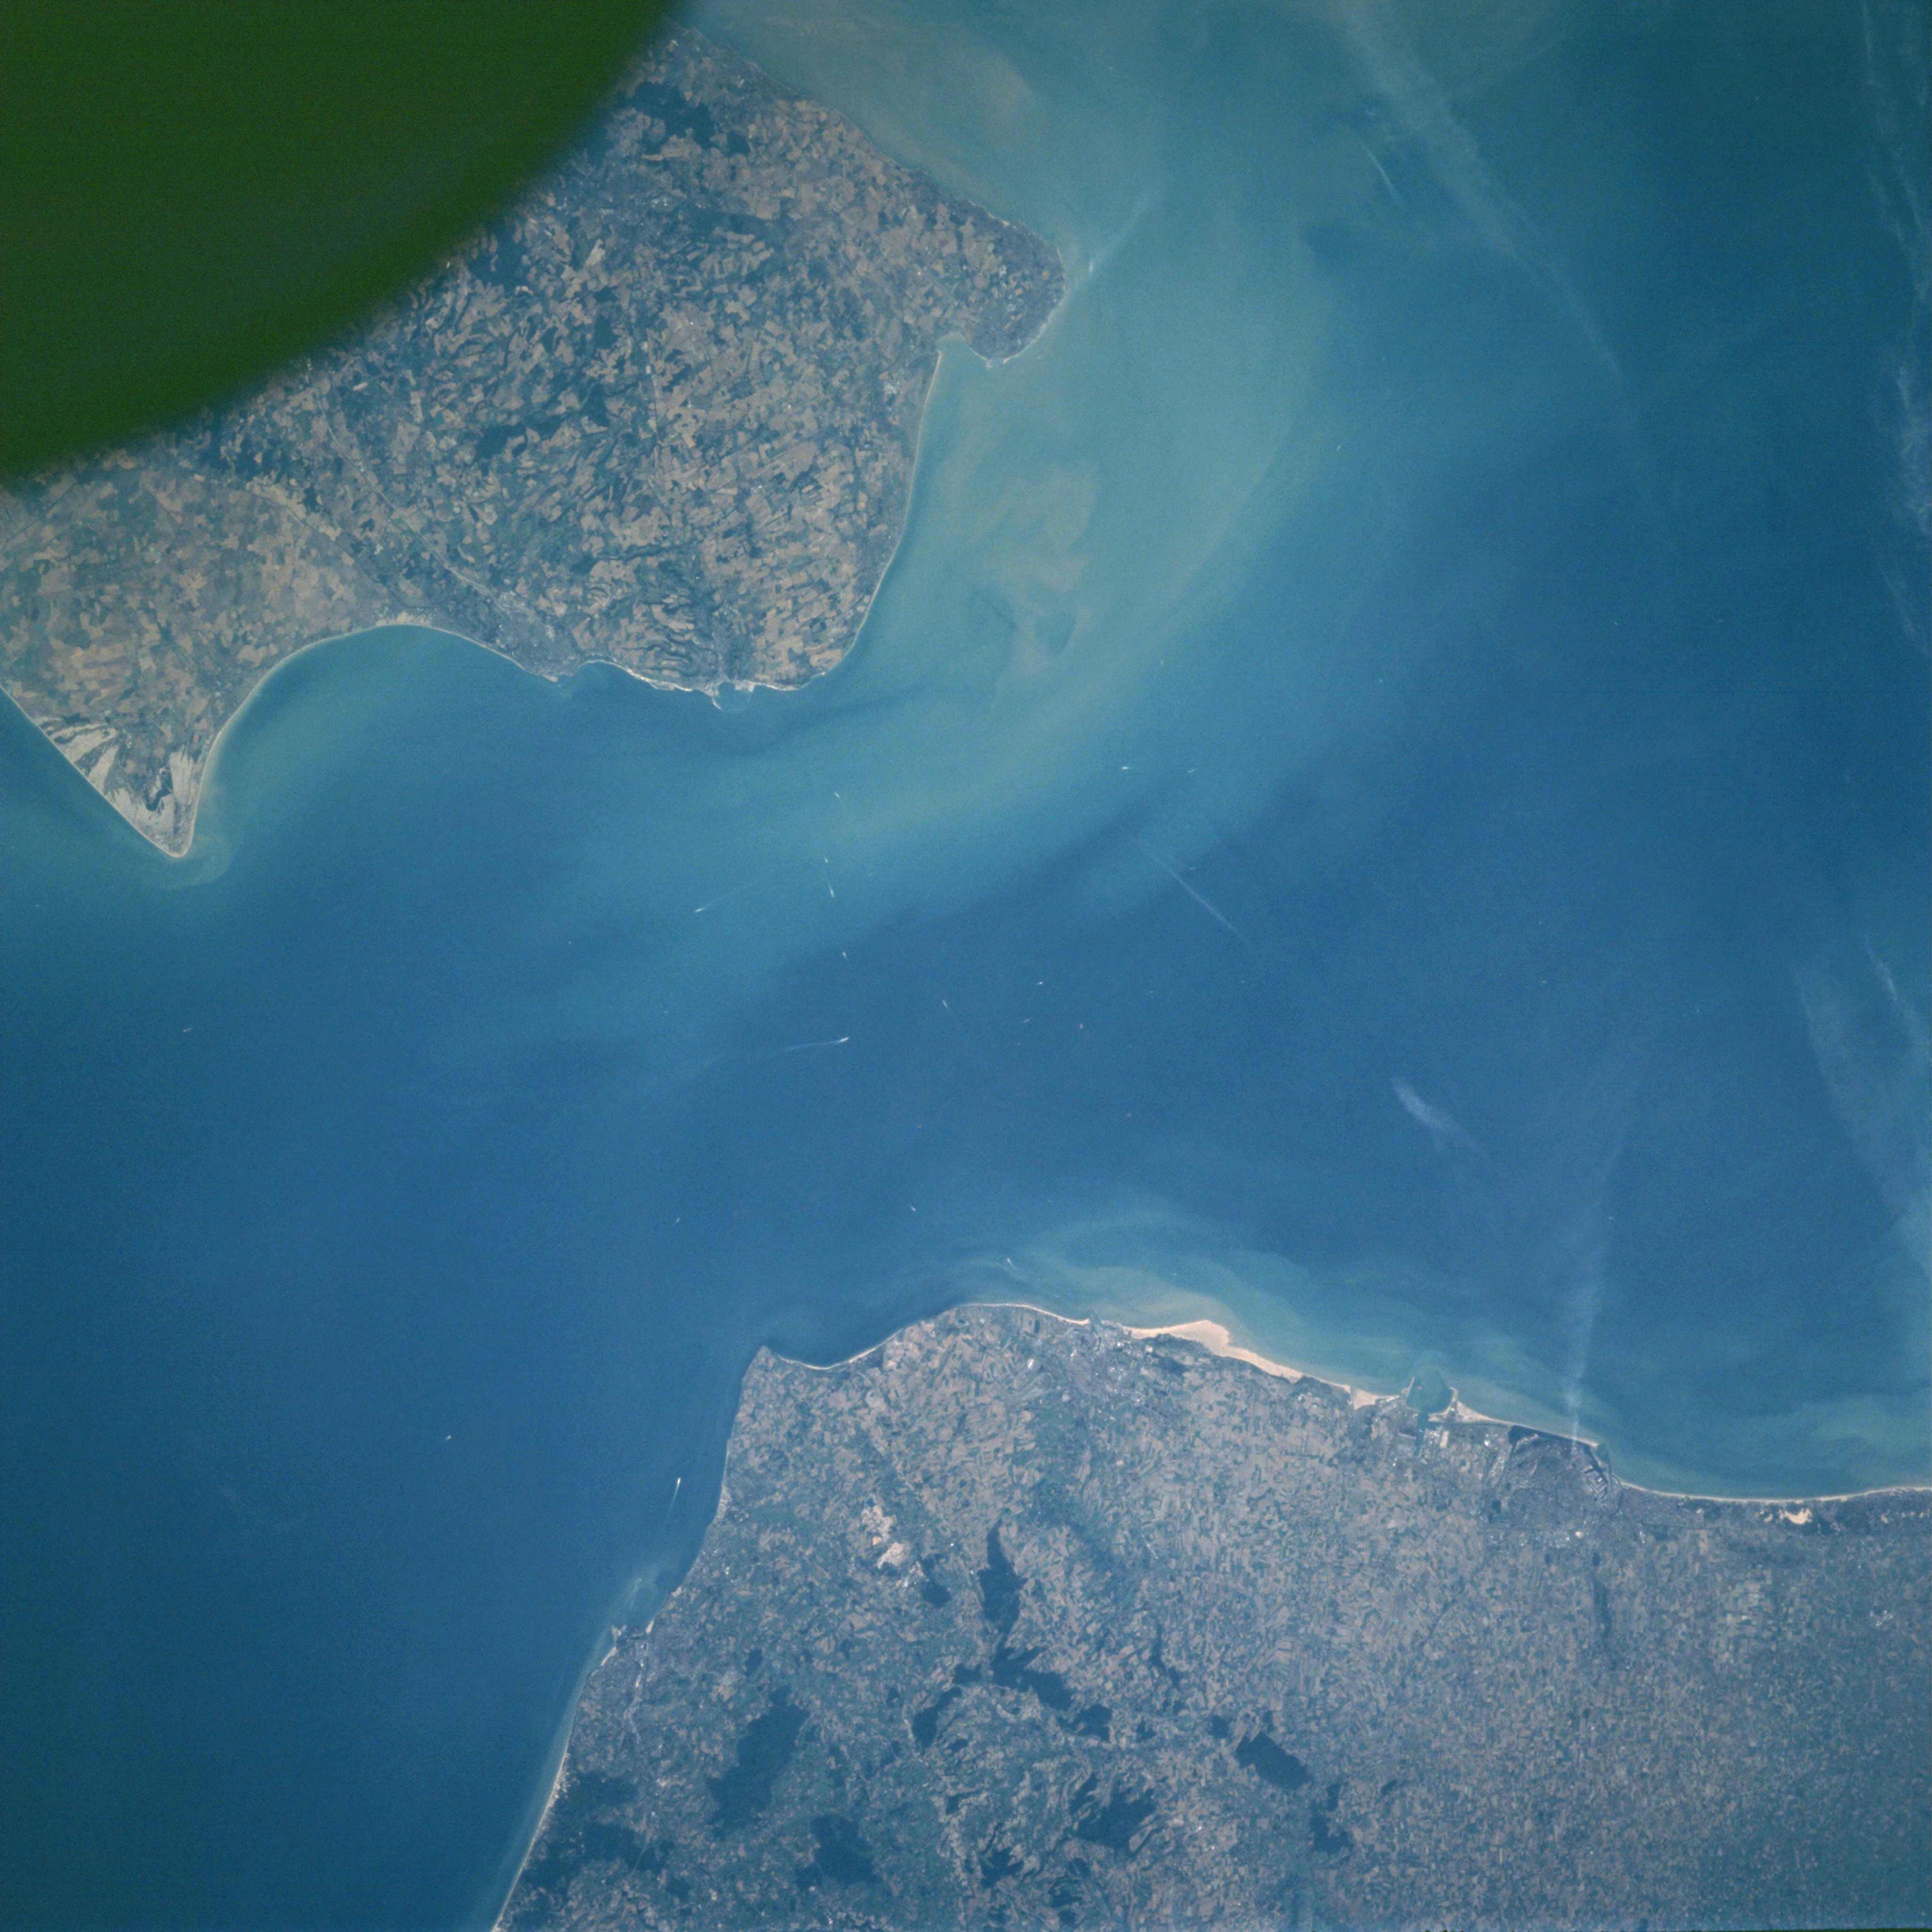 File:Strait of dover STS106-718-28.jpg